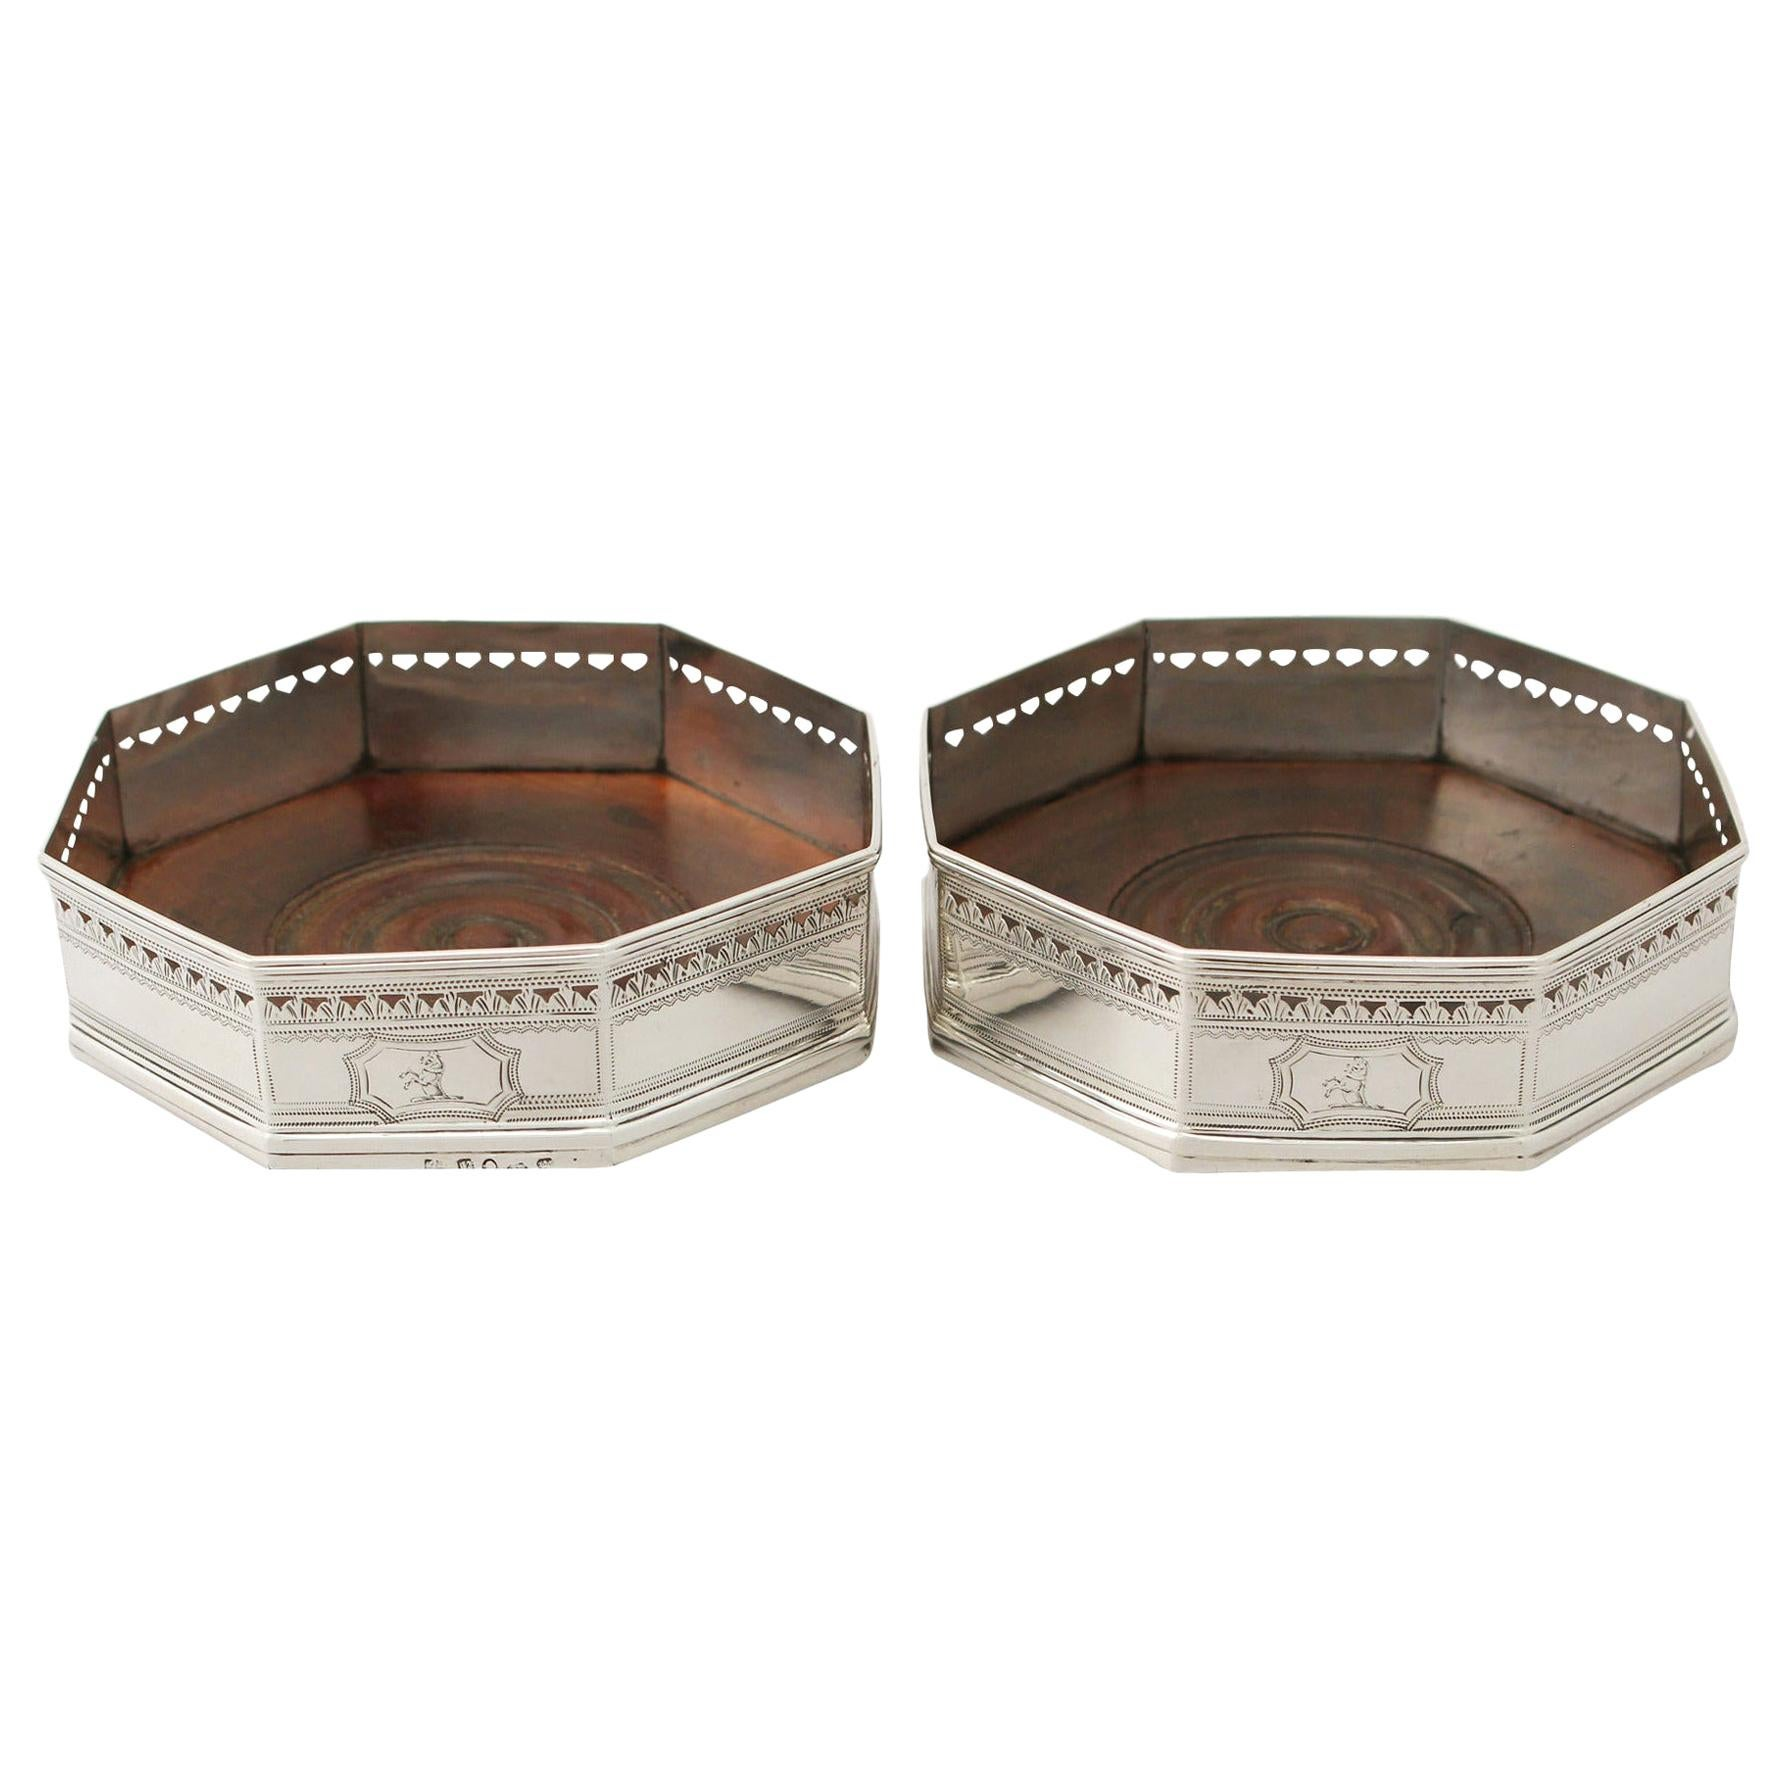 Antique Pair of Sterling Silver Coasters